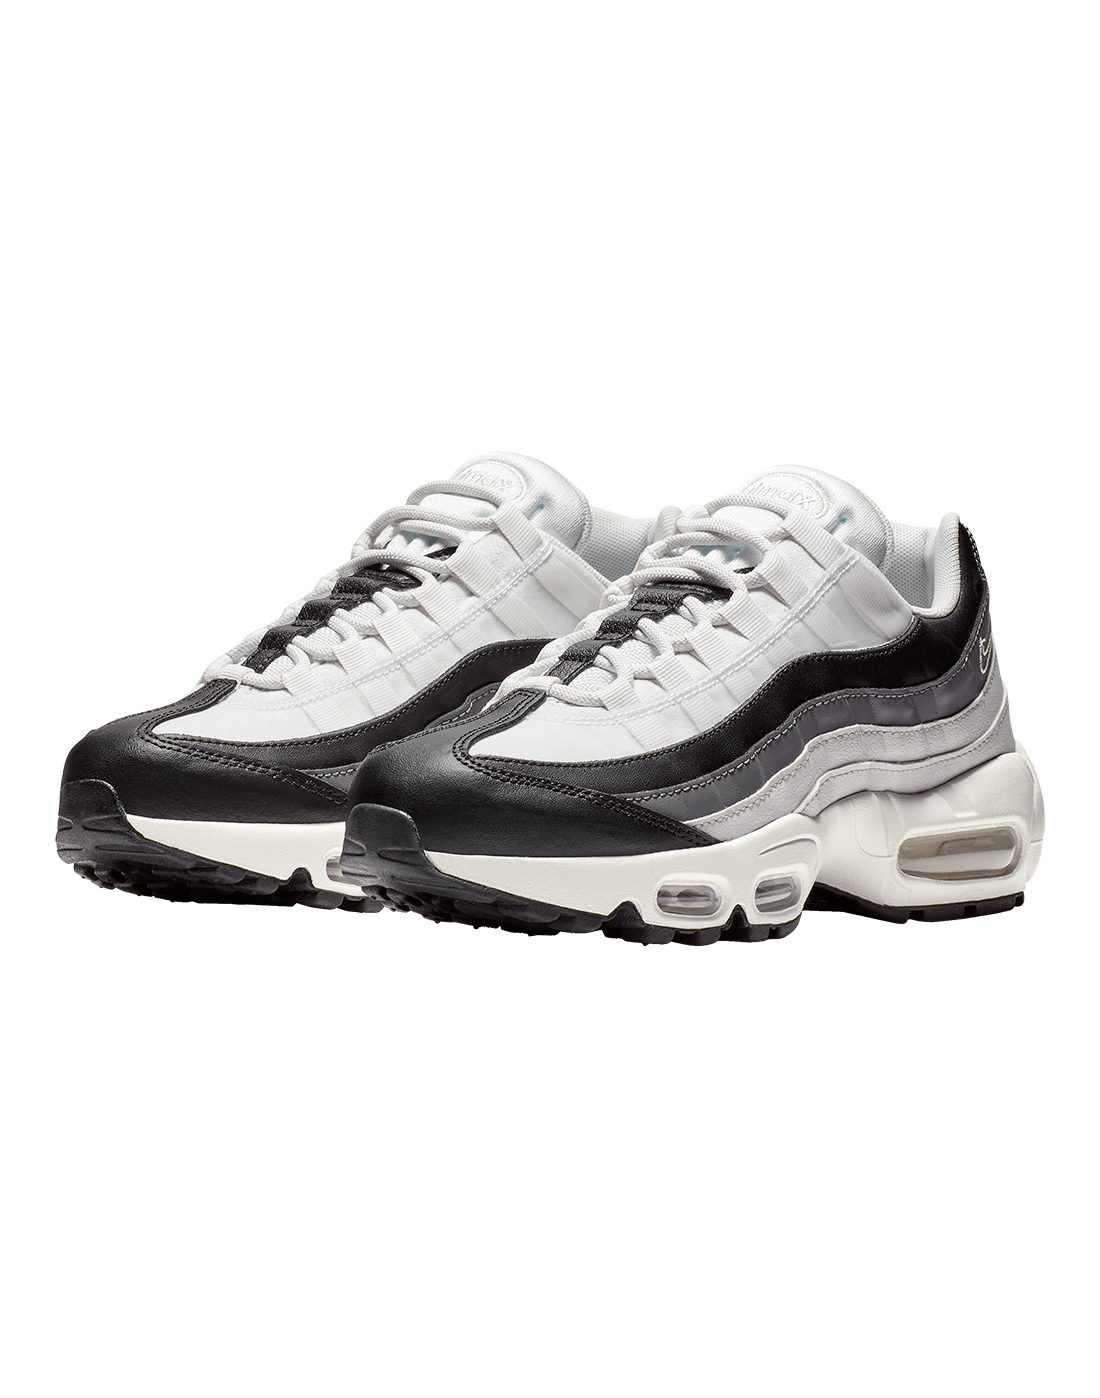 brand new a7674 362c2 ... Womens Air Max 95 Prm ...